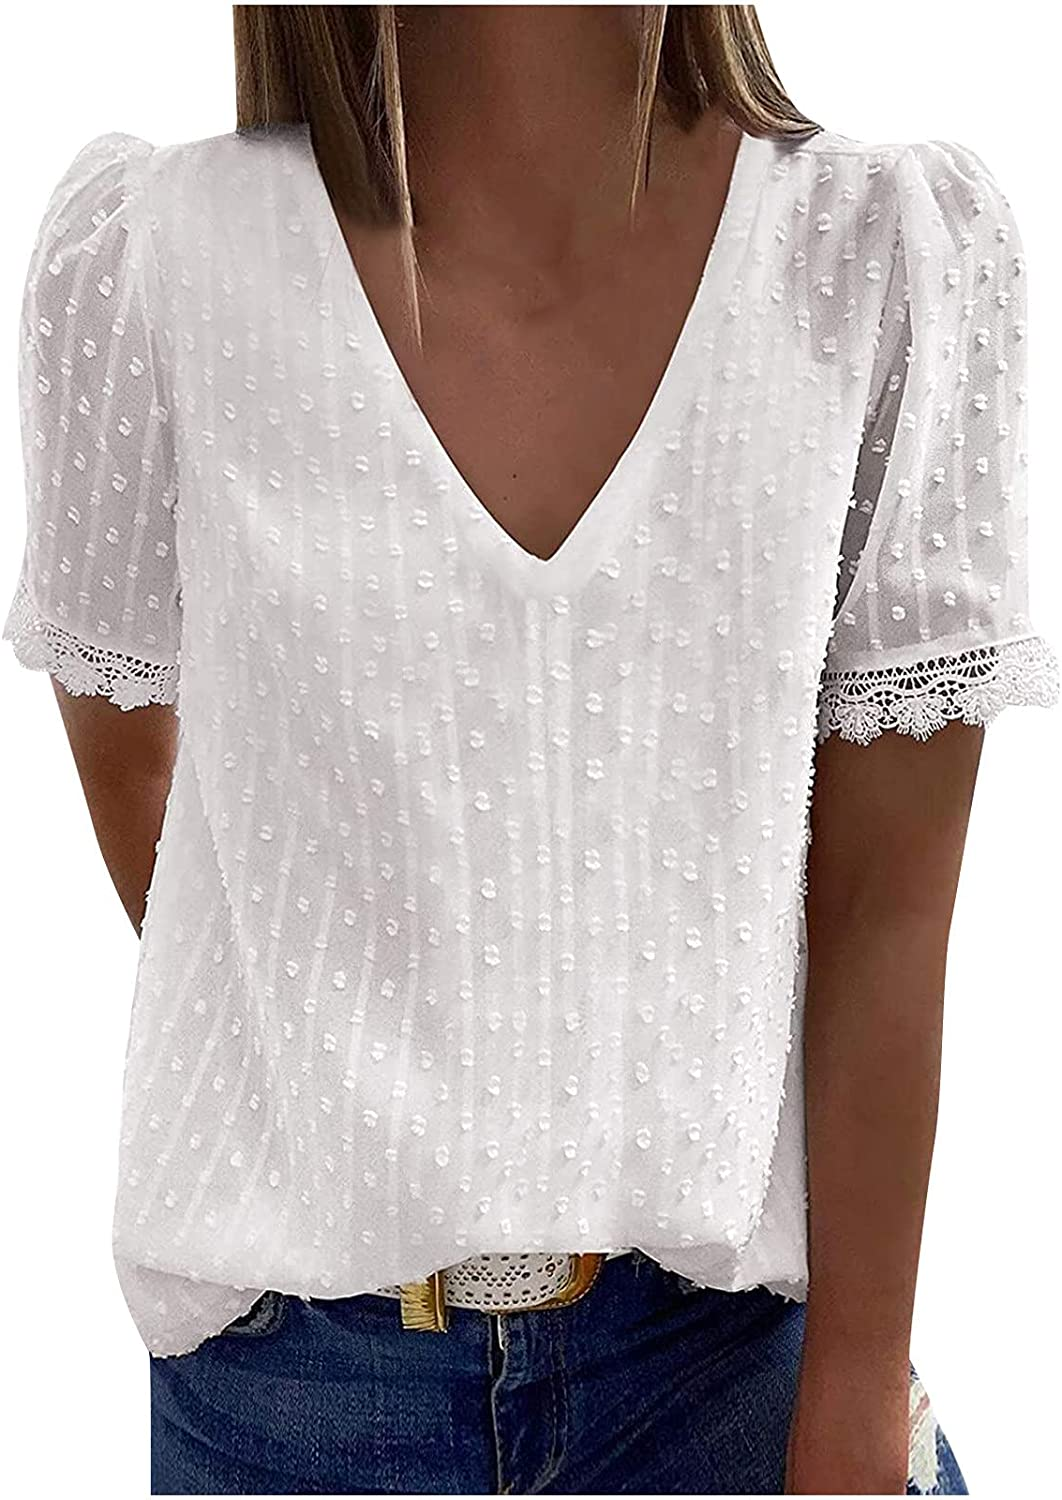 Women Fort Worth Mall Blouses and Tops Soldering Fashion for Work Sho Solid Casual